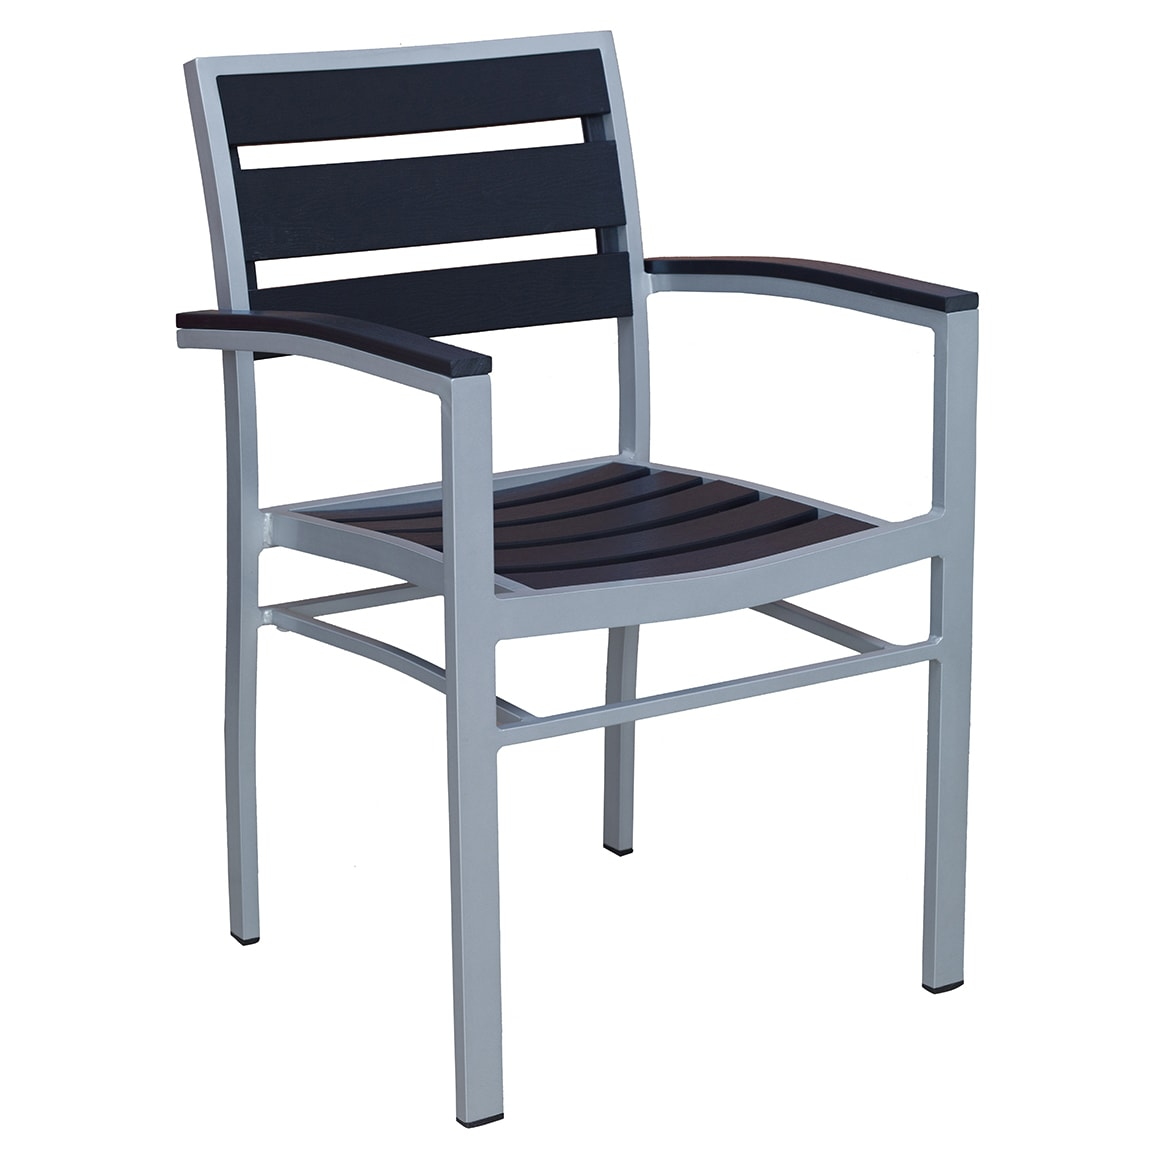 Aluminum Arm Chair with Black Plastic Teak